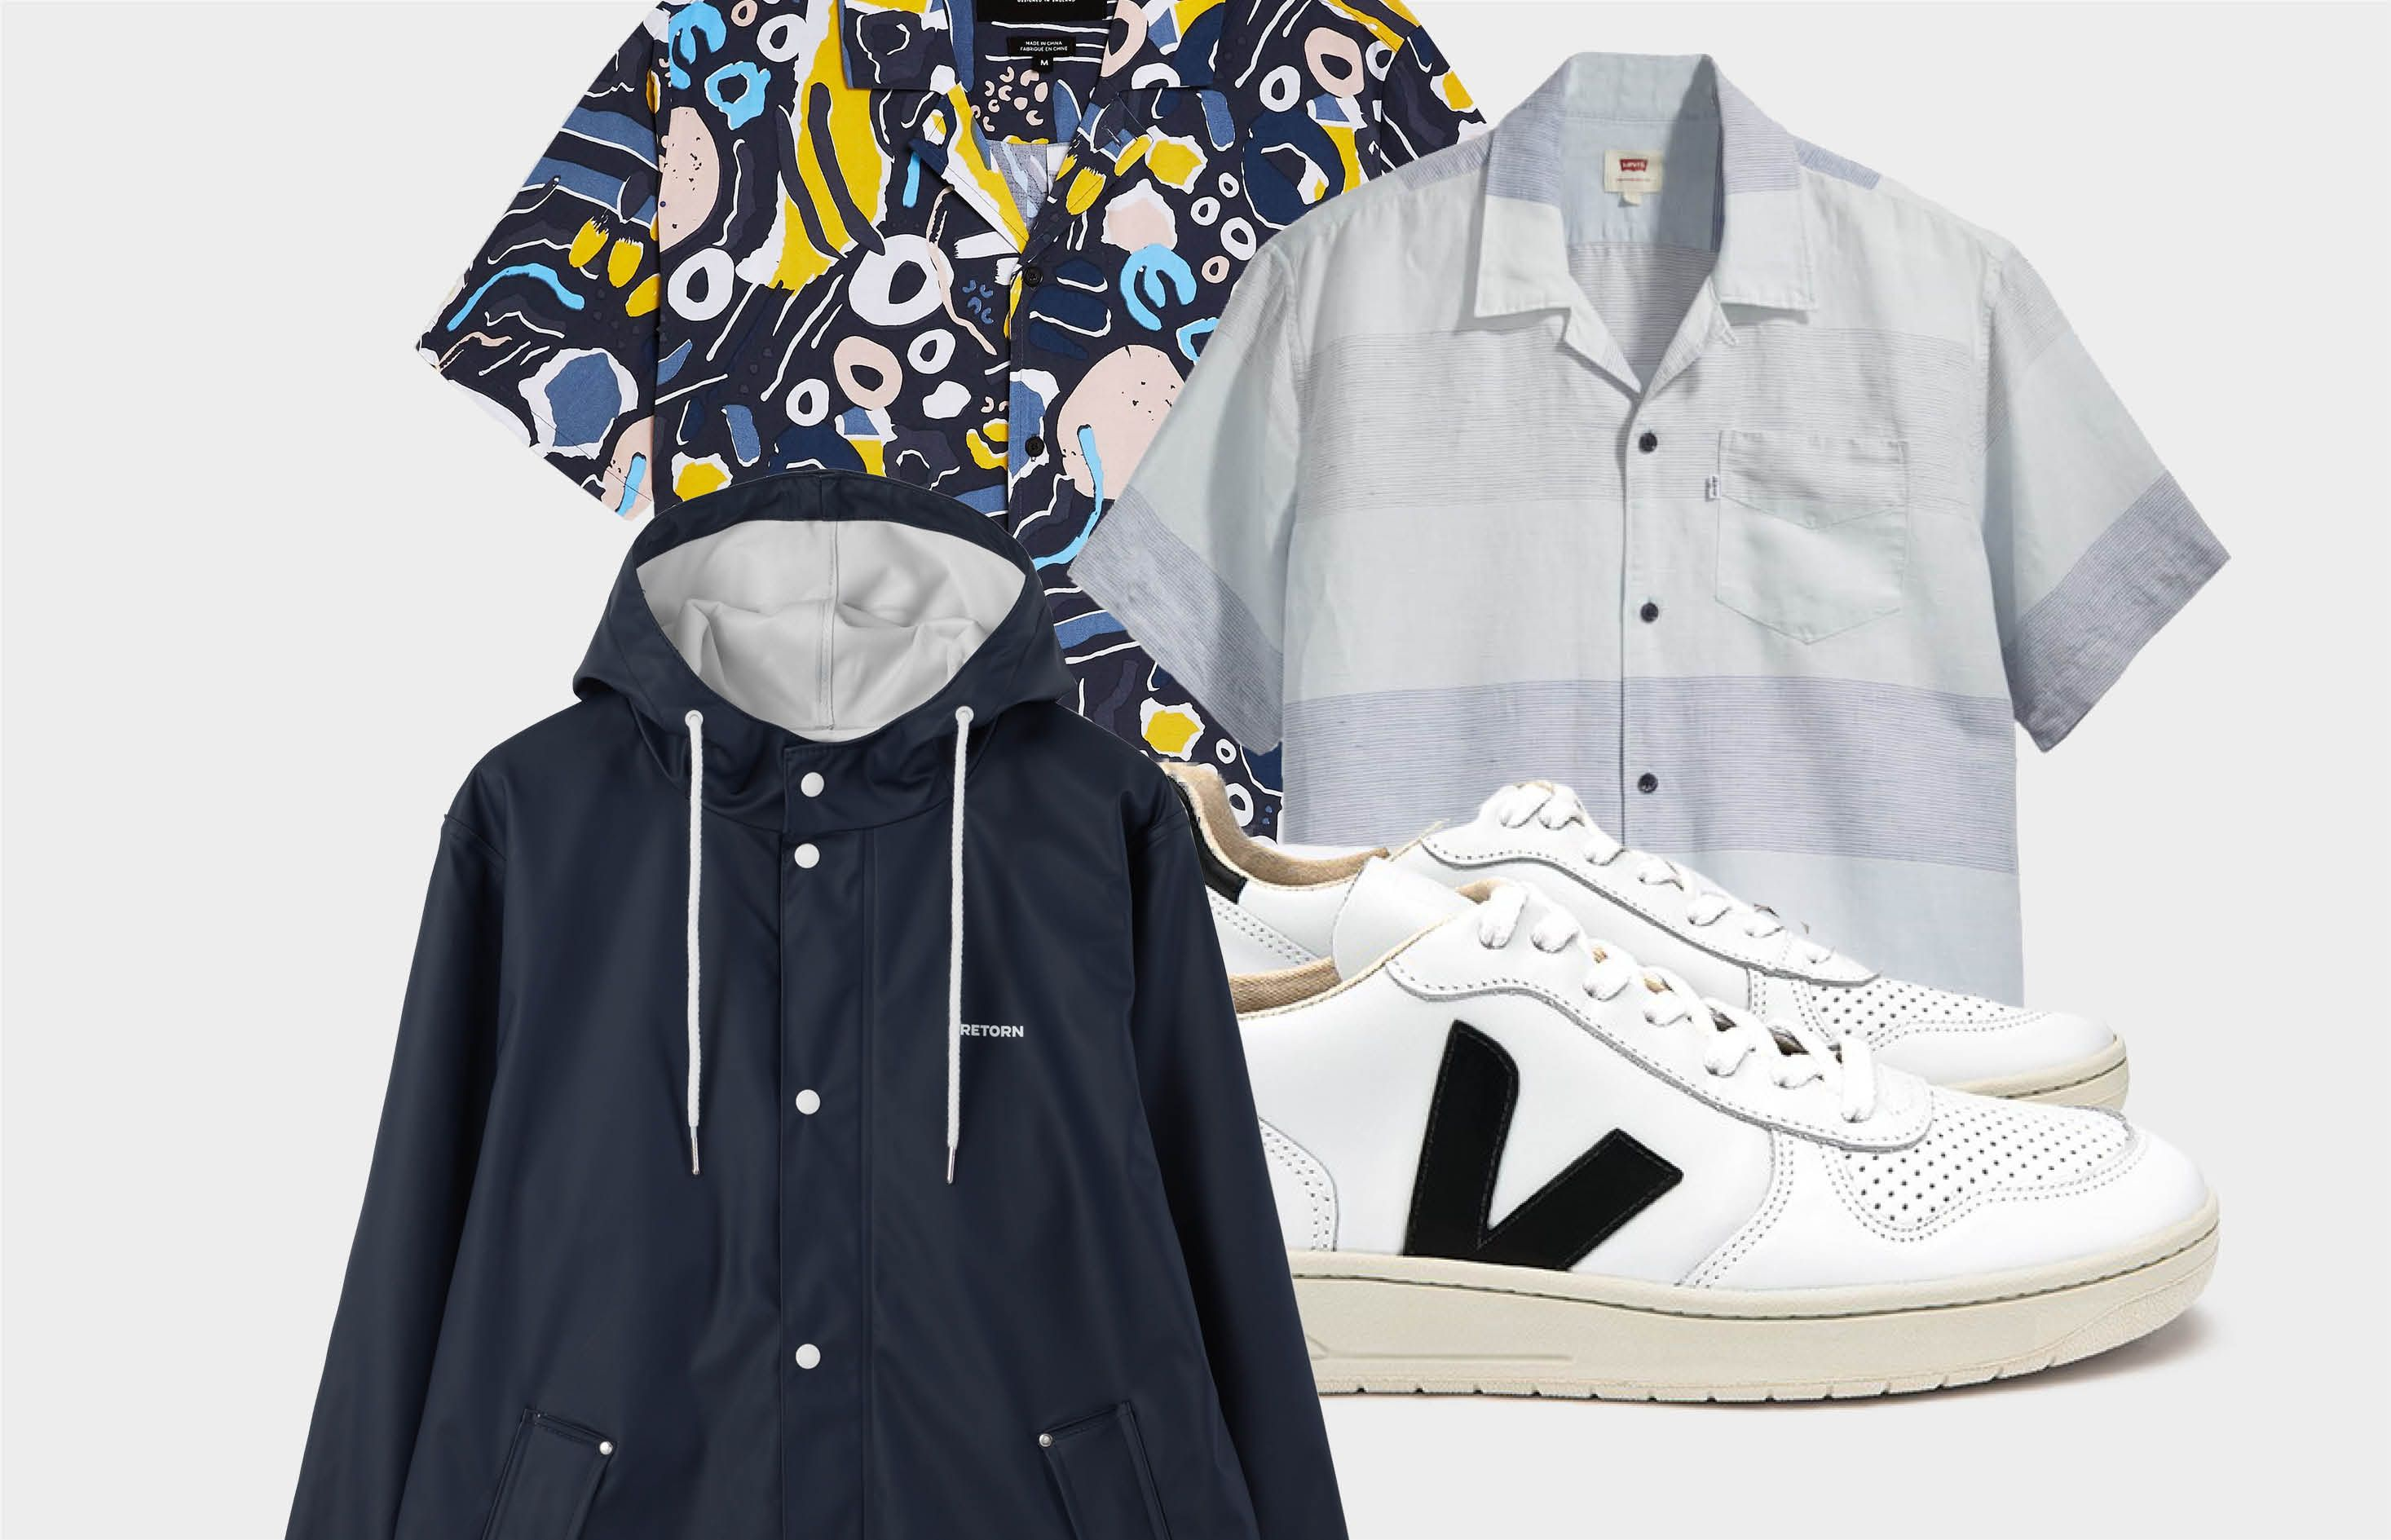 Our stylists' favourite new arrivals